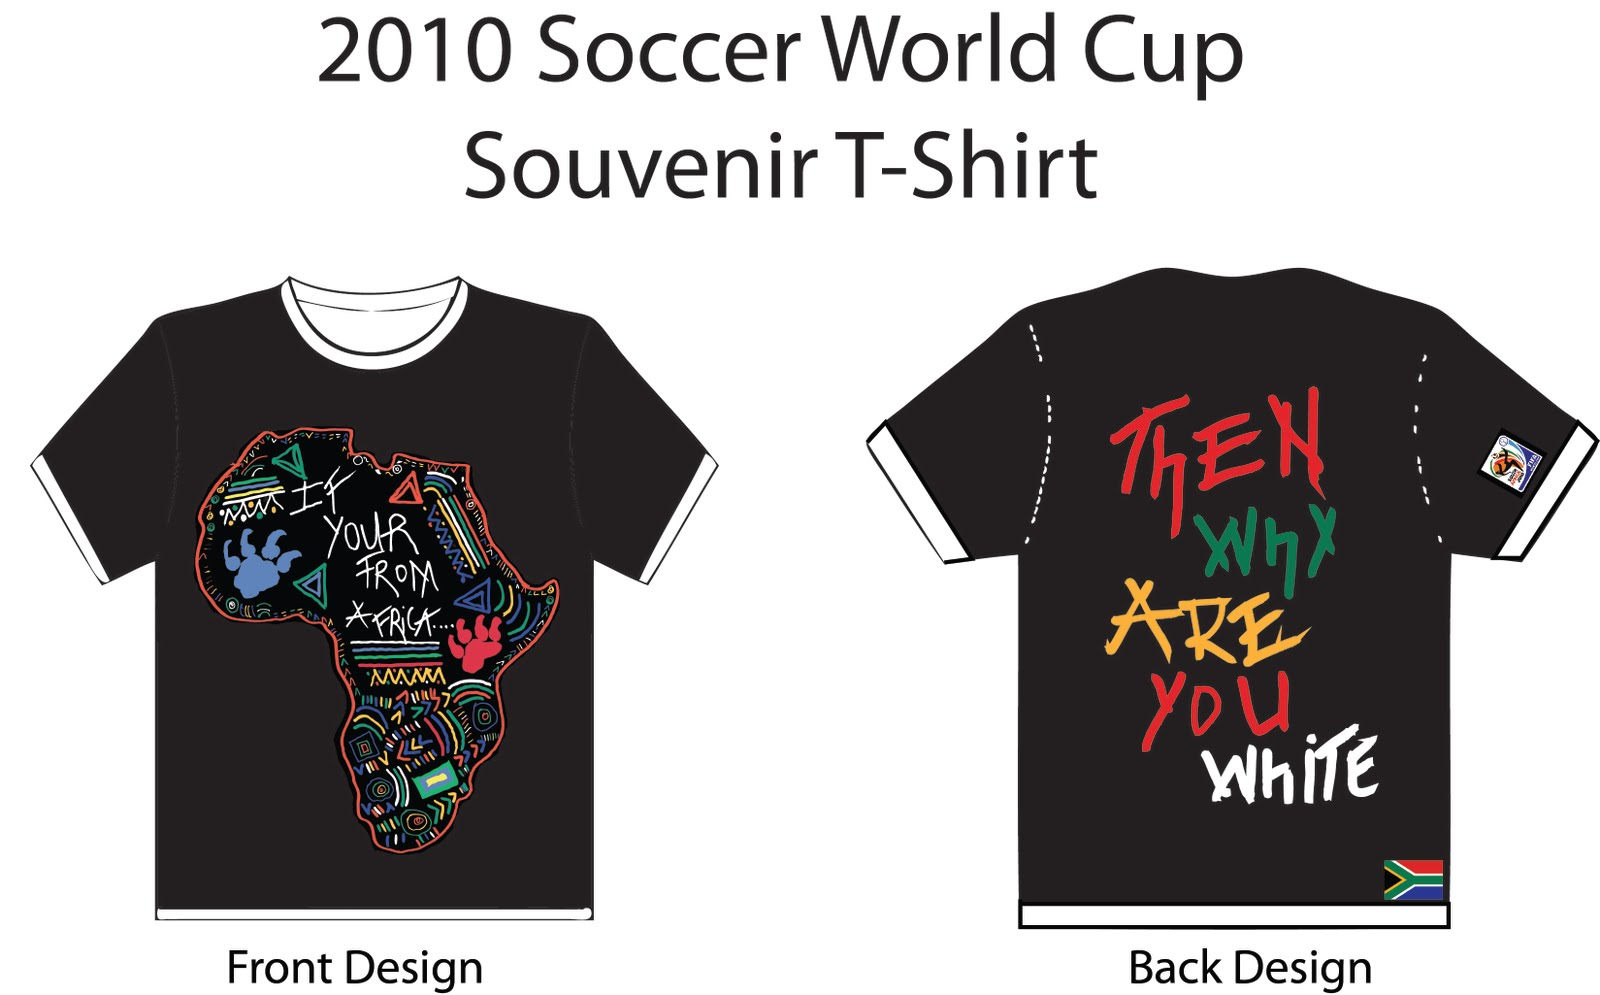 Design t shirt soccer - For The T Shirt Design Assignment I Decided To Create A T Shirt That Could Be Used To Sell During The 2010 South Africa Soccer World Cup